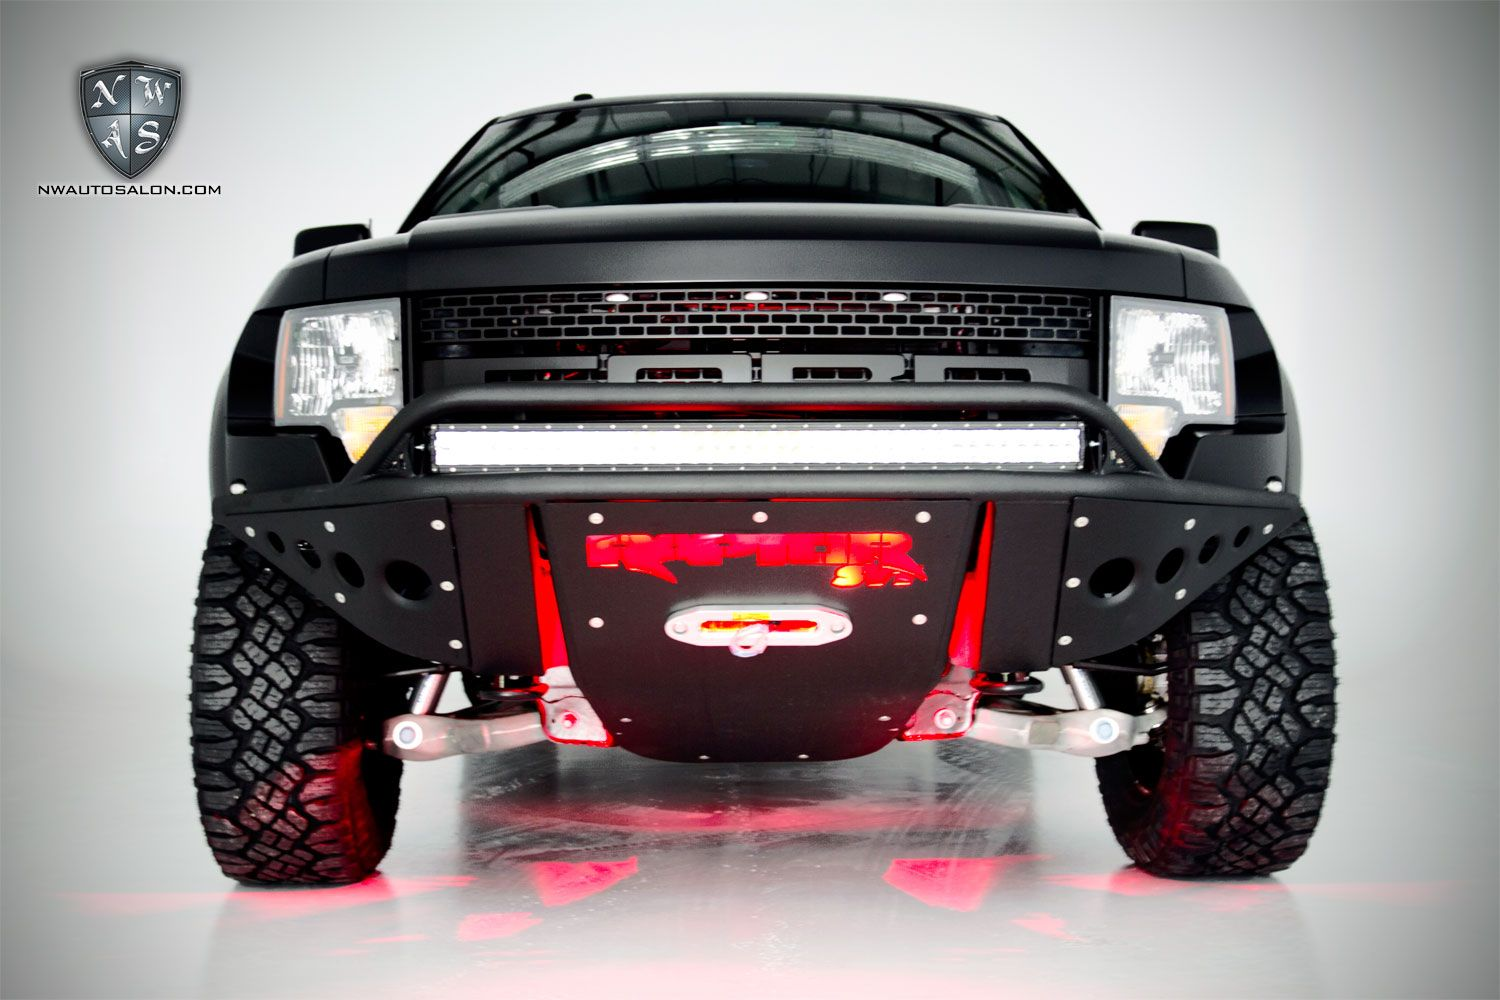 Pin By Eric Johnson On Love Of Cars Ford Raptor Svt Ford Raptor